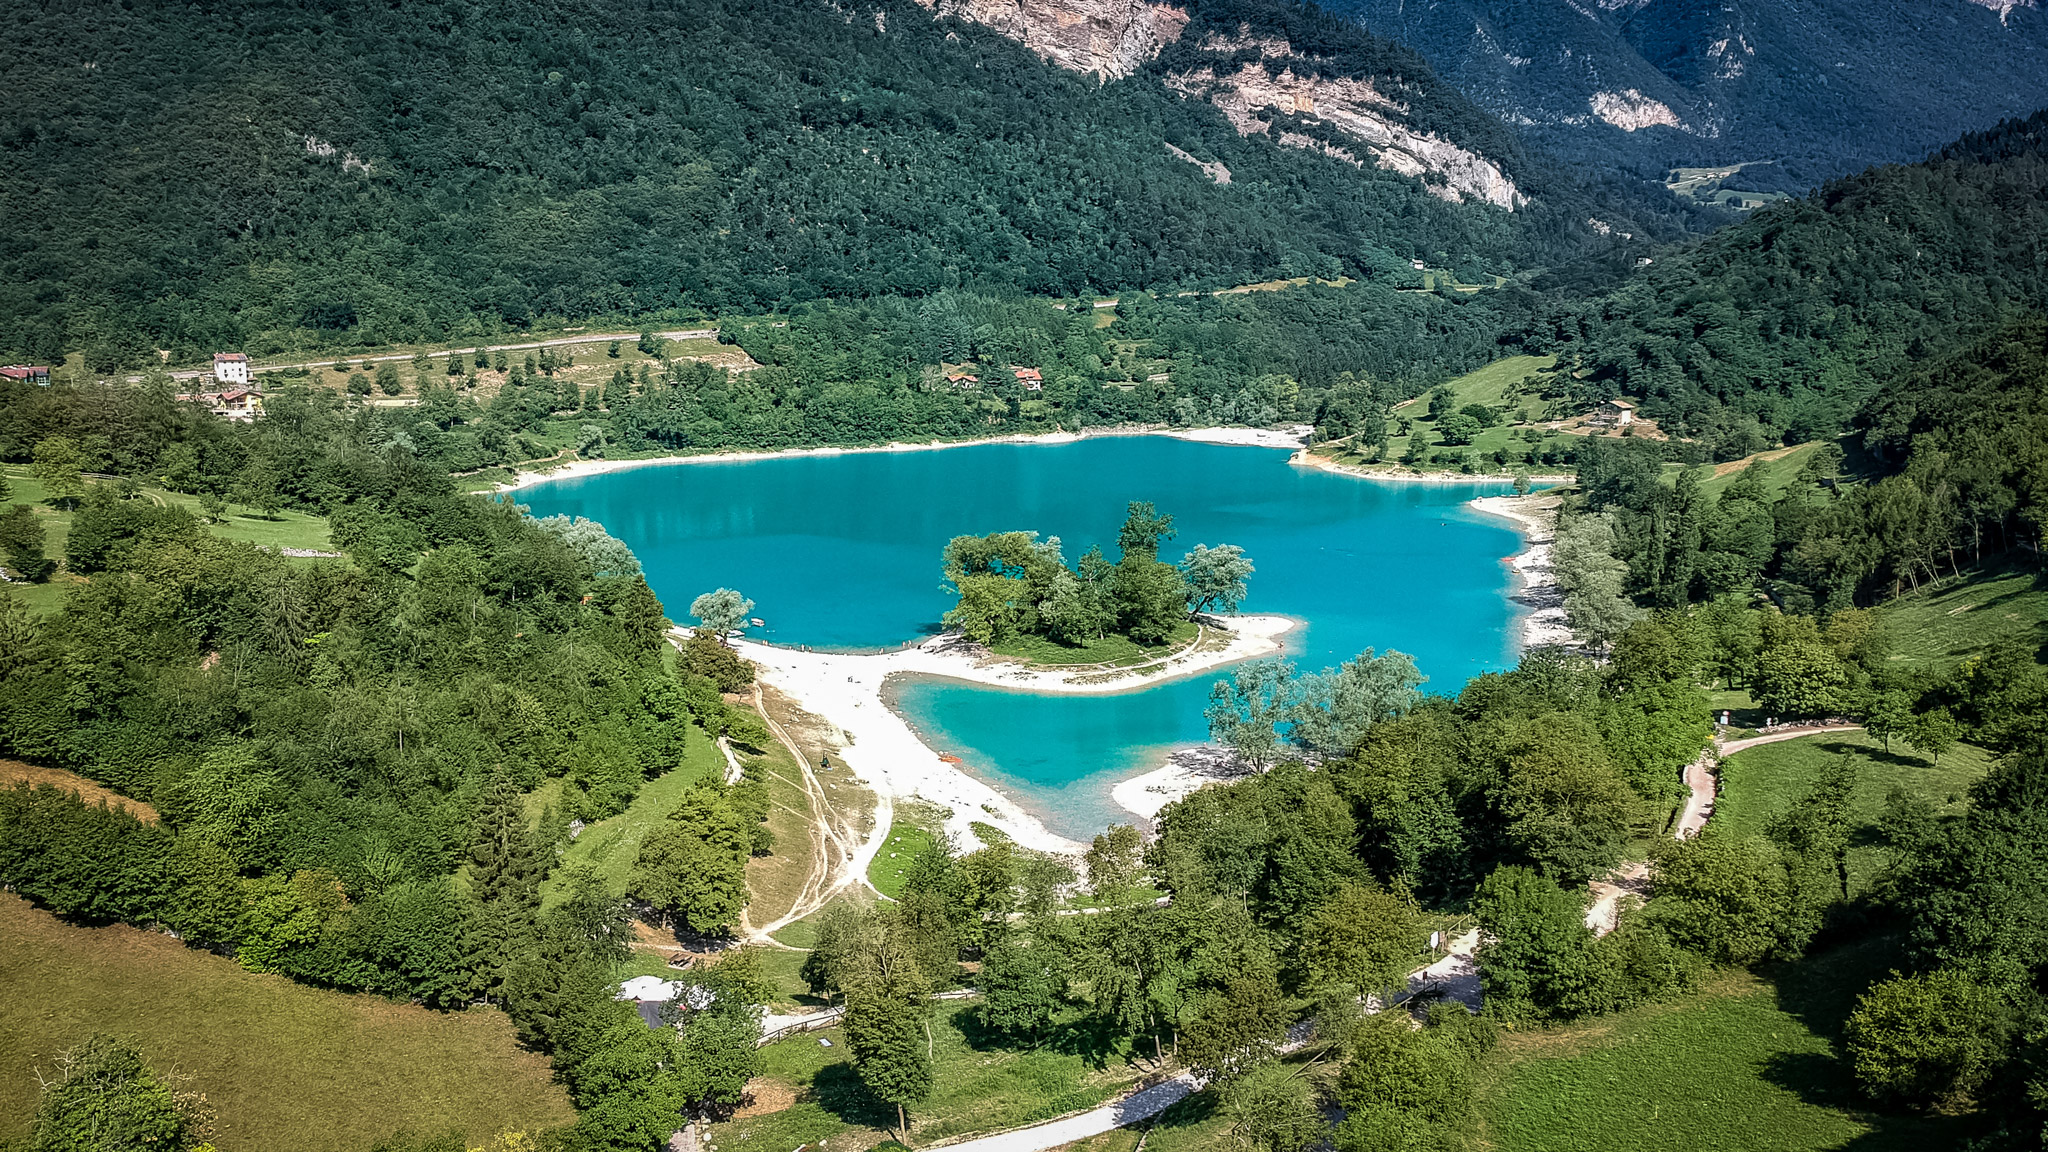 Lake Tenno, Italy